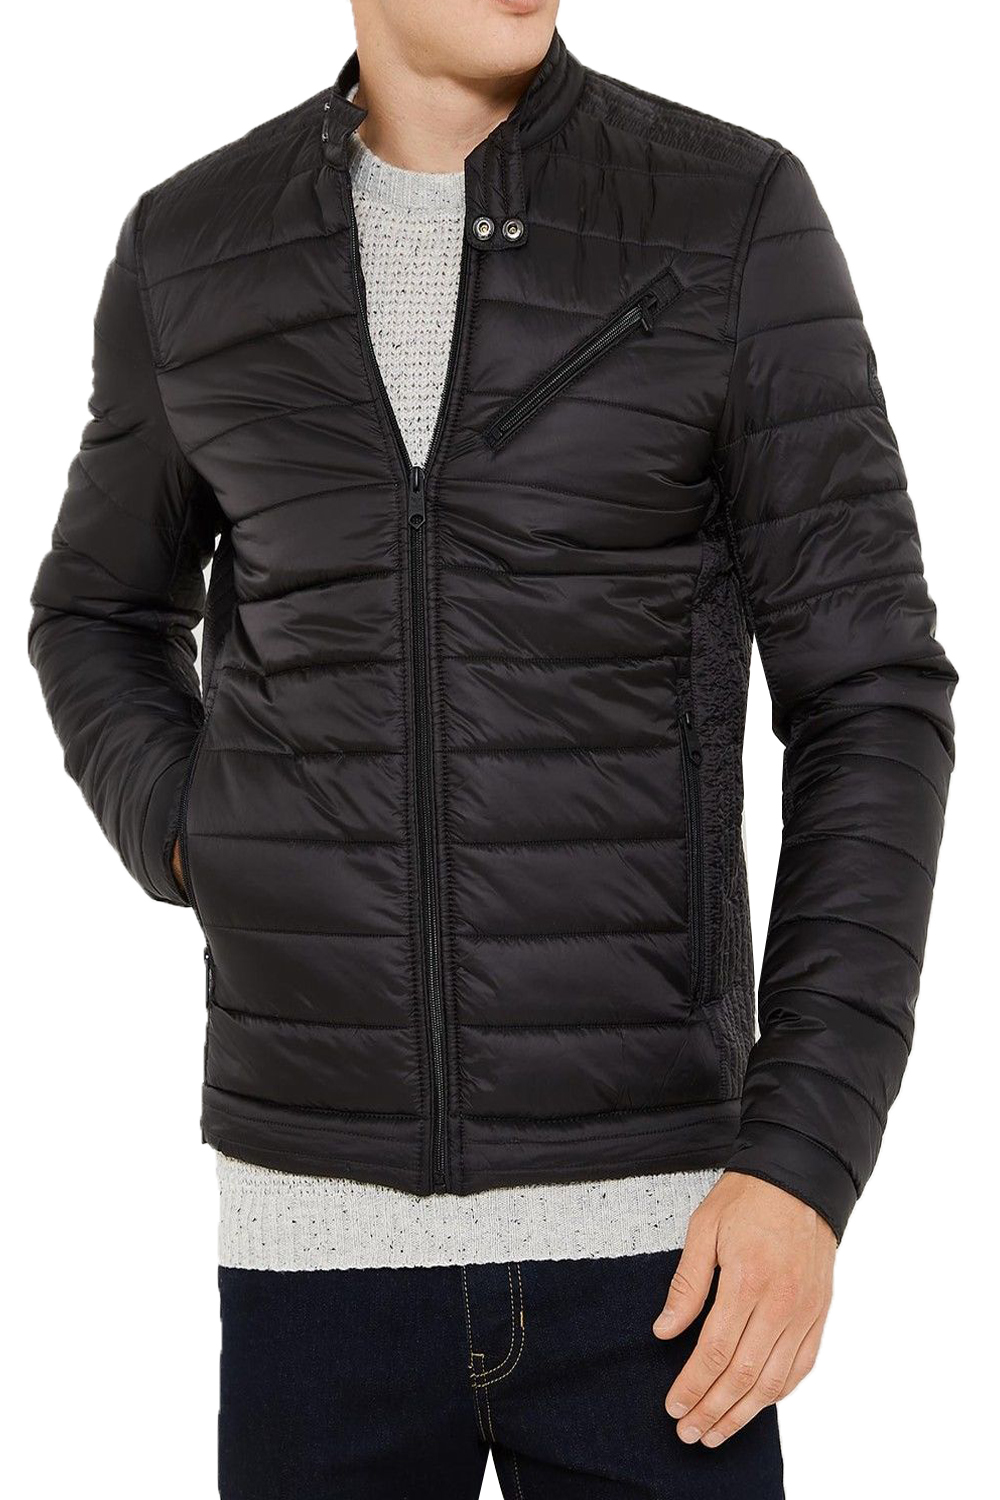 Shop our online clearance edit now for men's designer jackets and coats with up to 70% off at specialisedsteels.tk